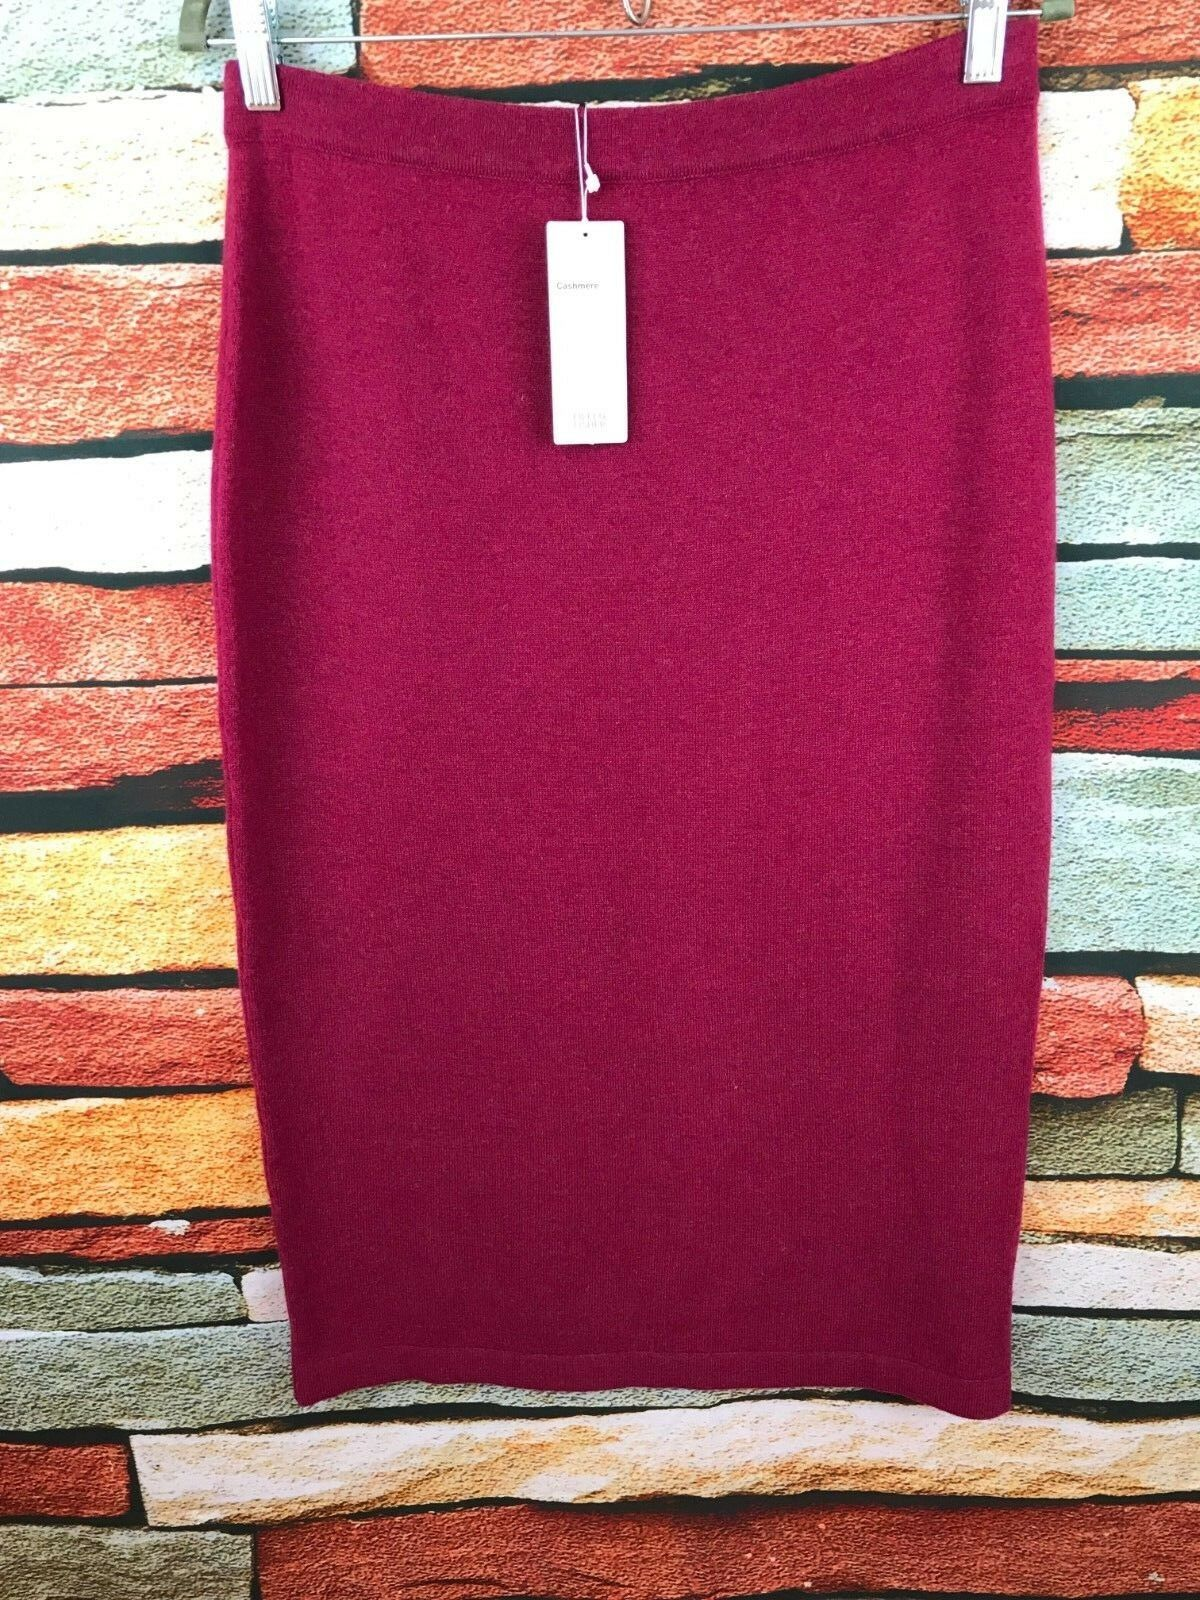 NWT EILEEN FISHER HIBISCUS RED FINE GAUGE CASHMERE CALF LENGTH SKIRT XL